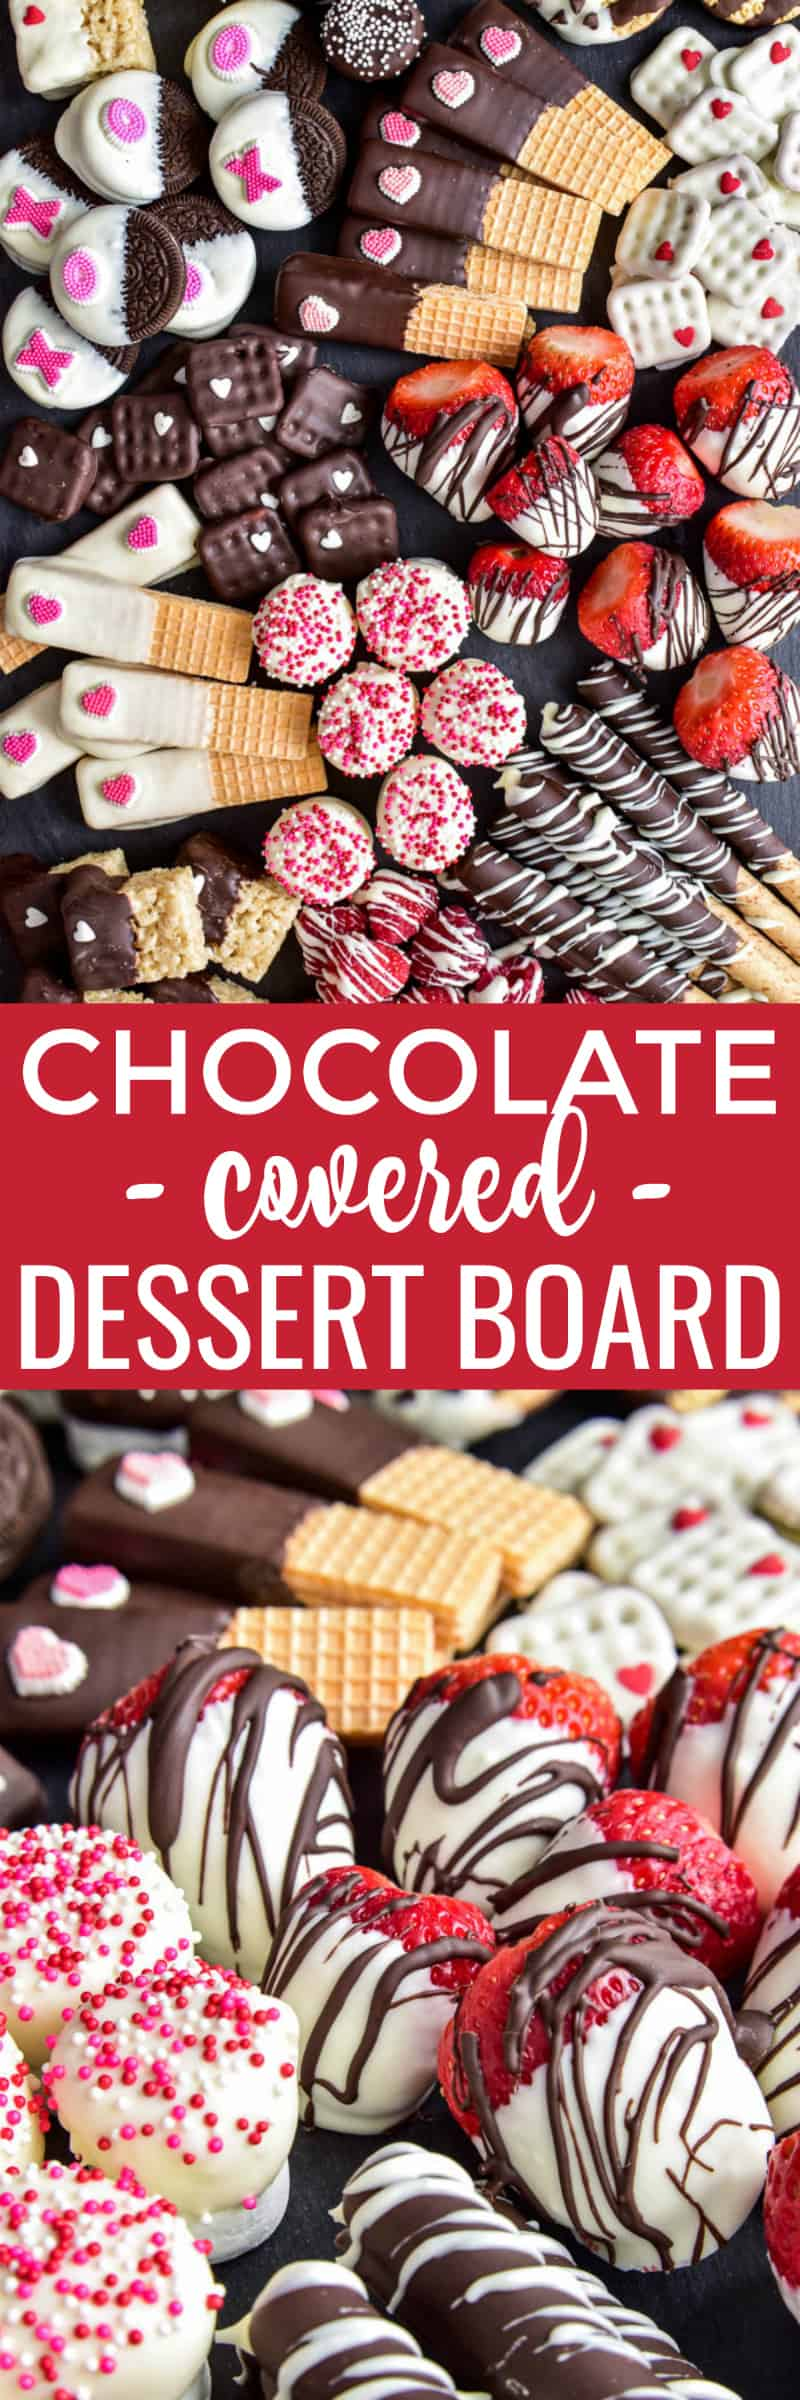 Collage image of Chocolate Covered Dessert Charcuterie Board